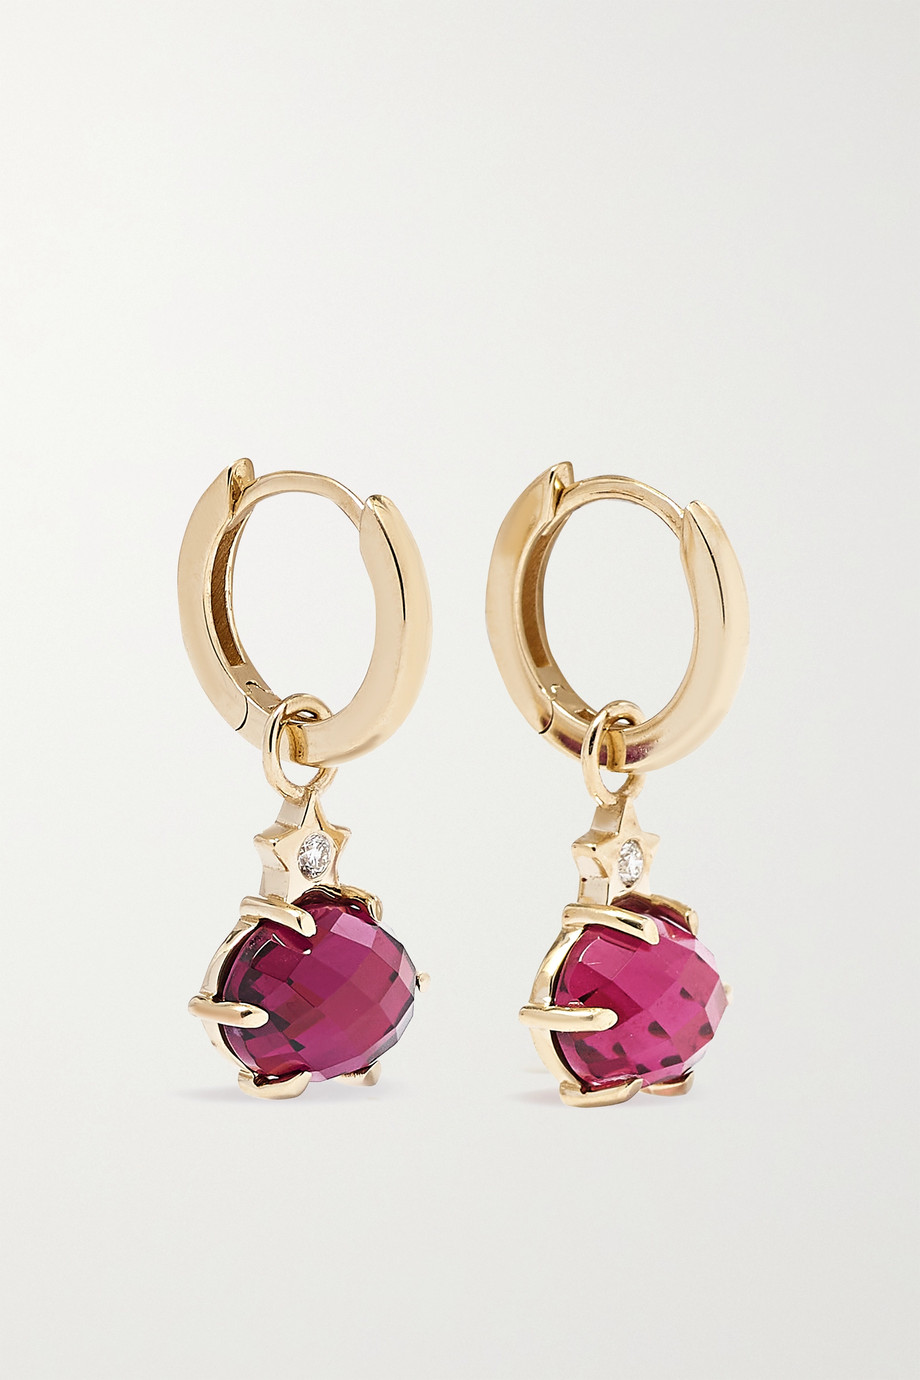 Andrea Fohrman Mini Cosmo 14-karat gold, rhodolite garnet and diamond earrings